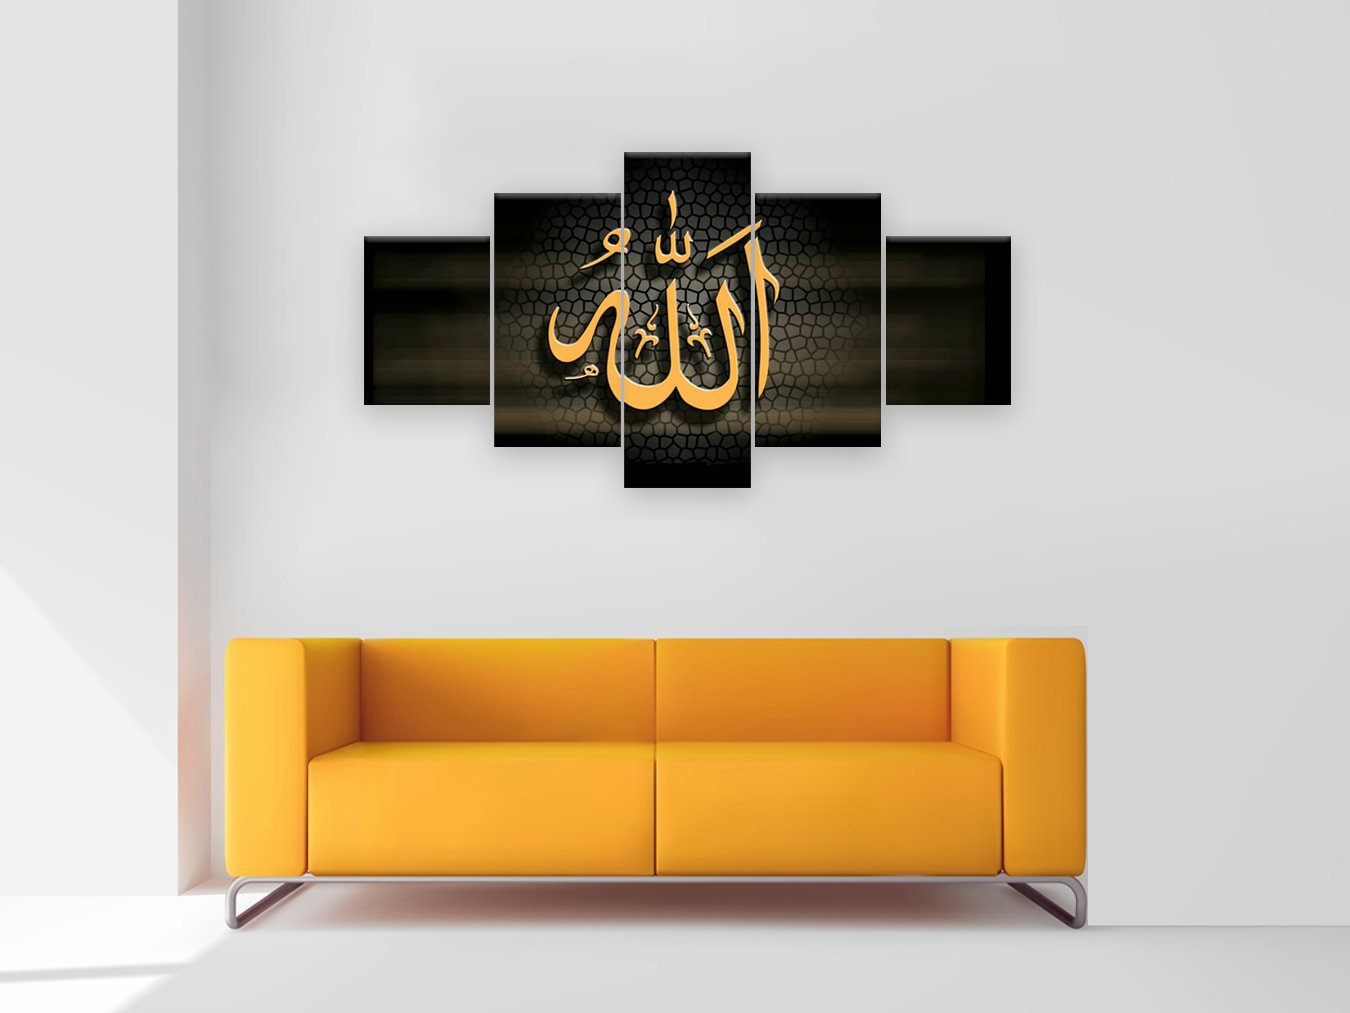 Amemny 5 pieces islam words pictures painting modern home decor canvas poster for living room wall art pictures hd painting wooden framed stretched ready to